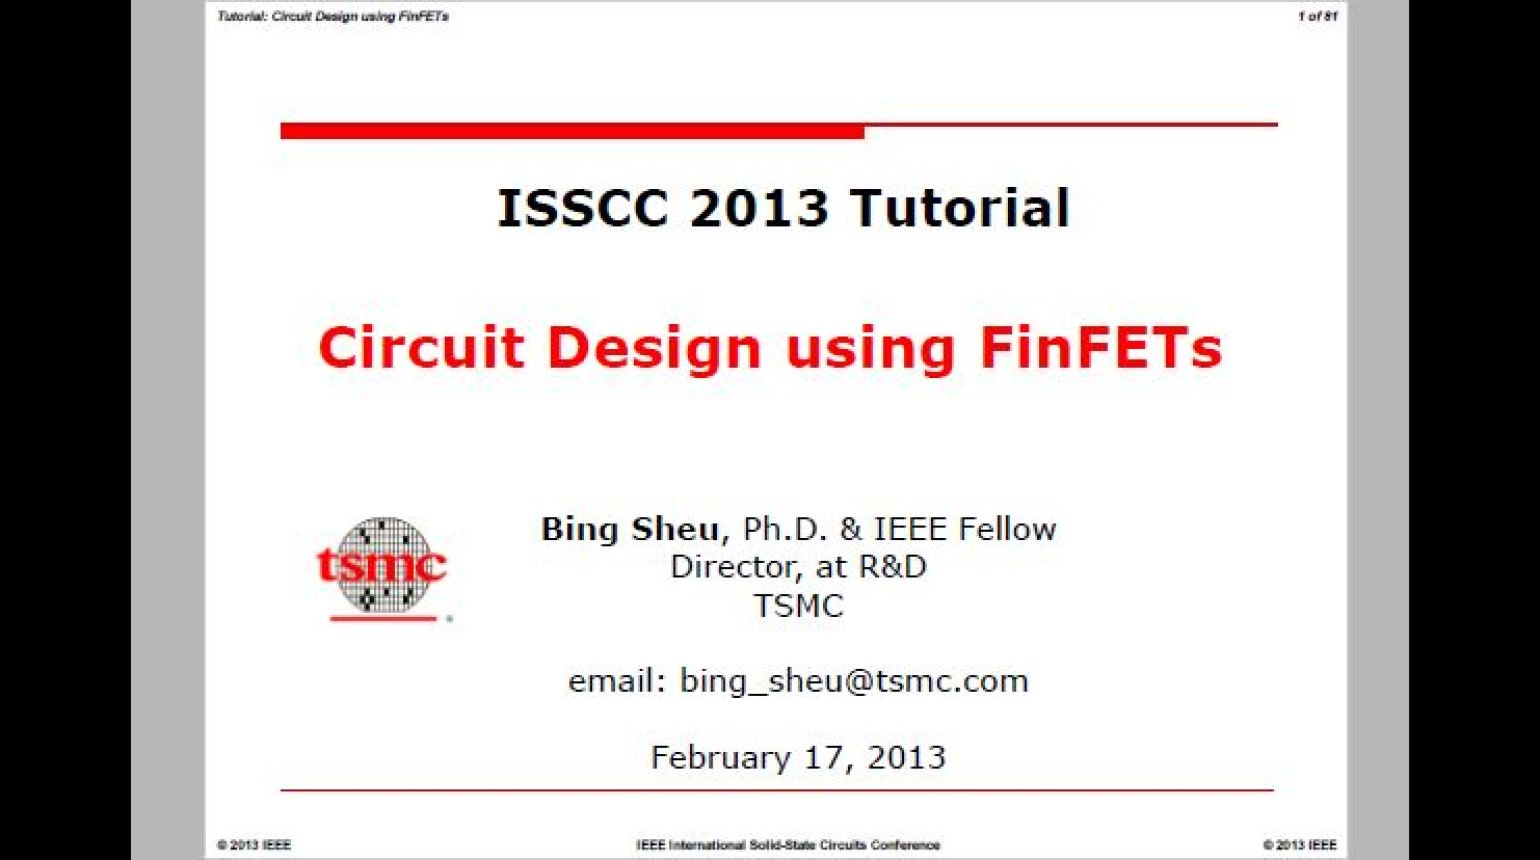 Circuit Design using FinFETs Video